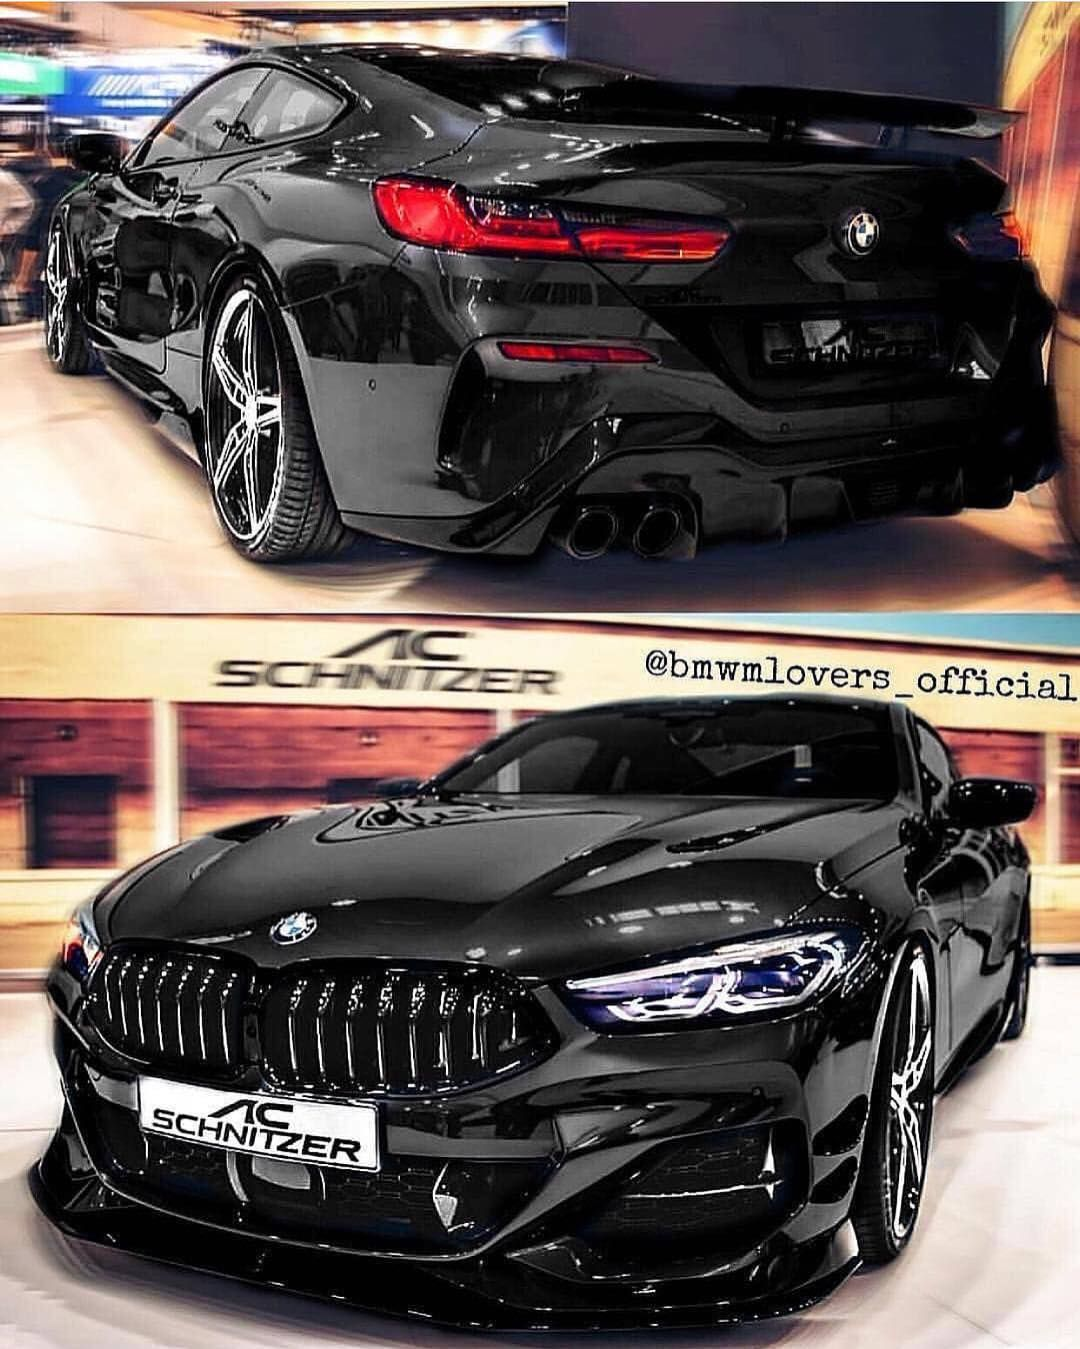 Rate 1 10 Follow Bmwfanpageofficial For More Tag Your Friends Bmw Cars Super Cars Best Car Photo